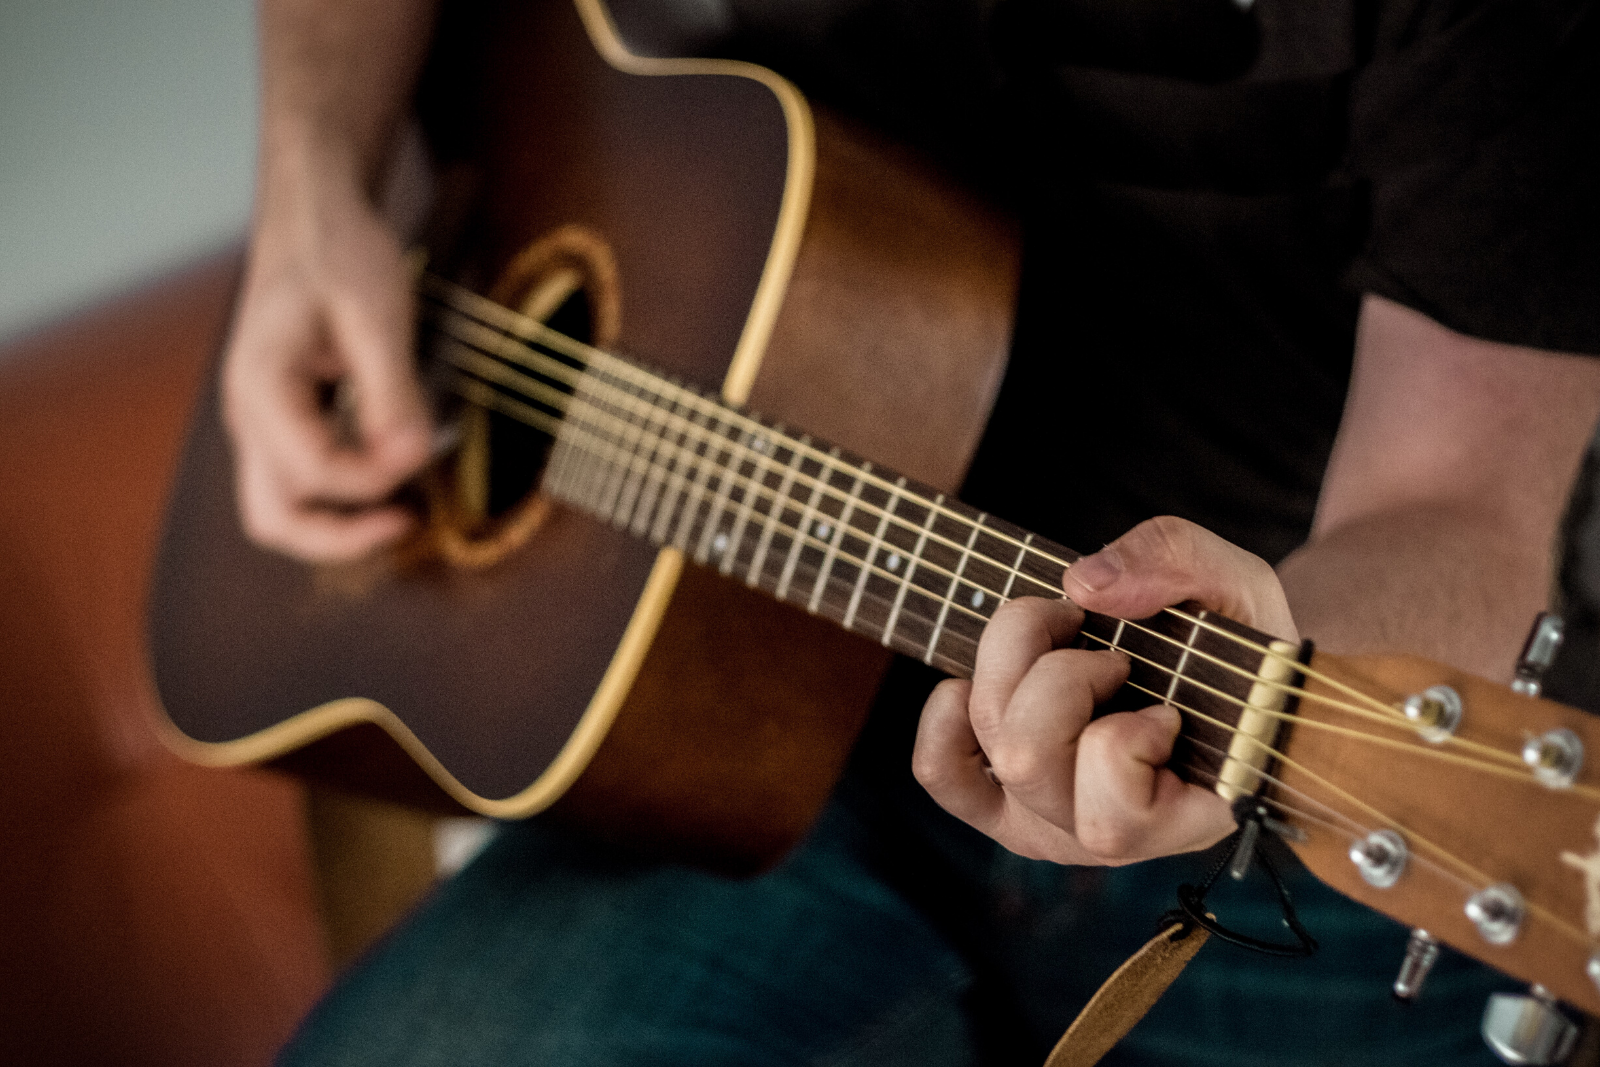 Man Playing Guitar | How To Play Guitar For Beginners: A Step-by-Step Guide